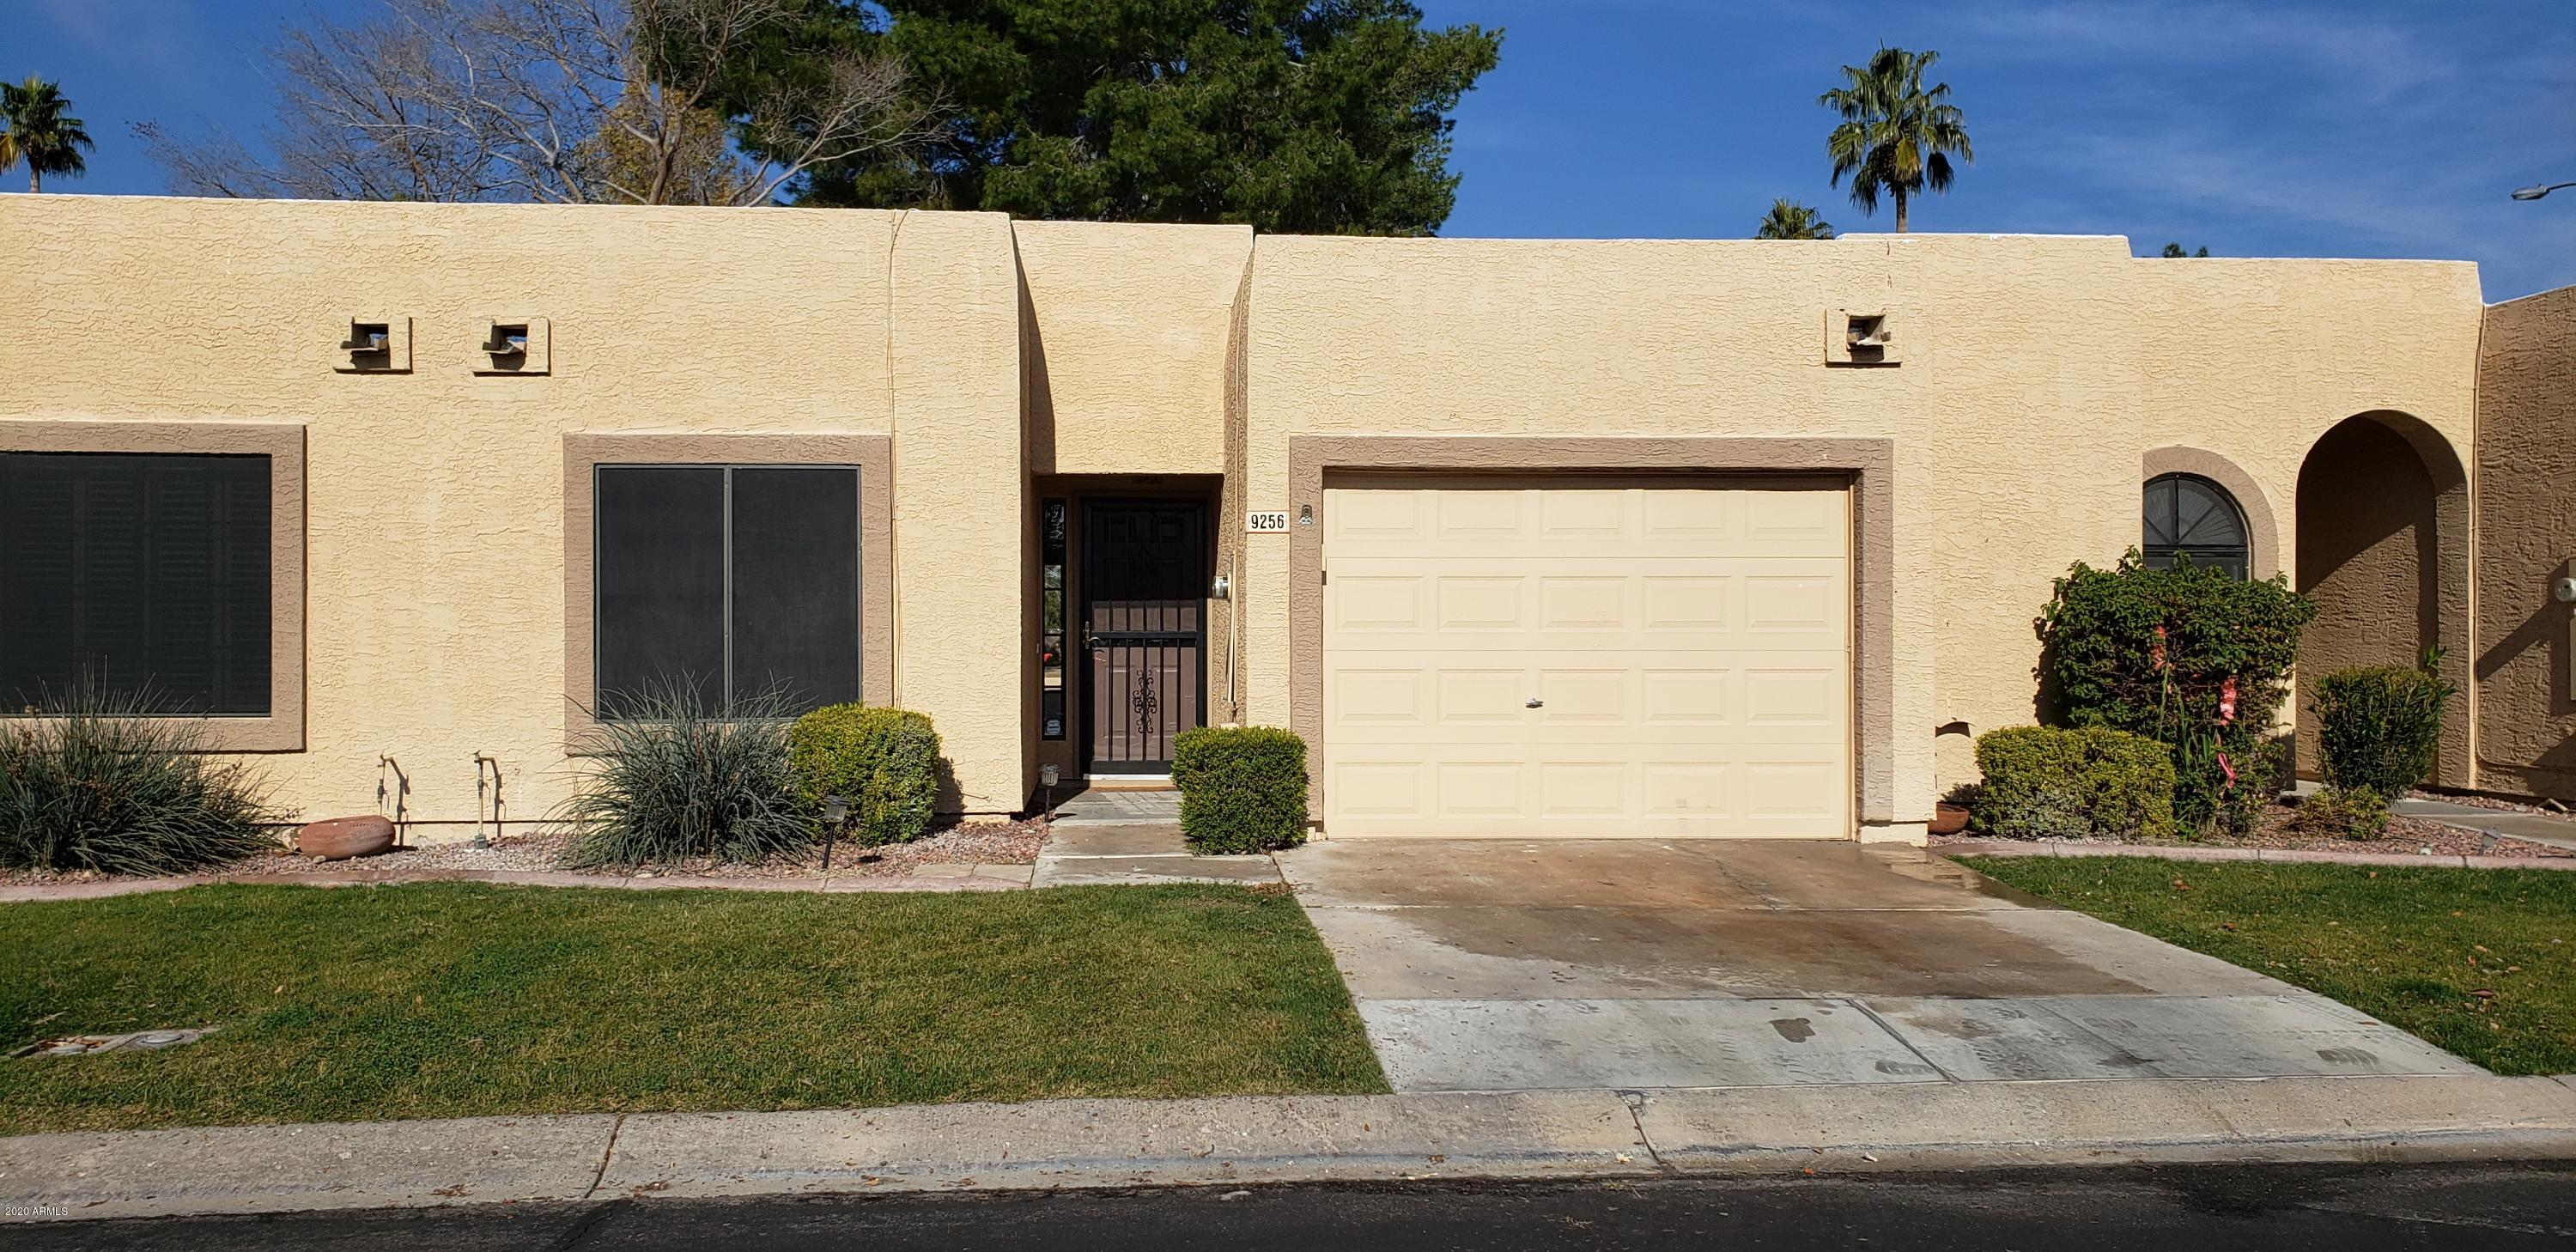 9256 W MORROW Drive, Peoria, Arizona 85382, 2 Bedrooms Bedrooms, ,Residential,For Sale,9256 W MORROW Drive,6027120